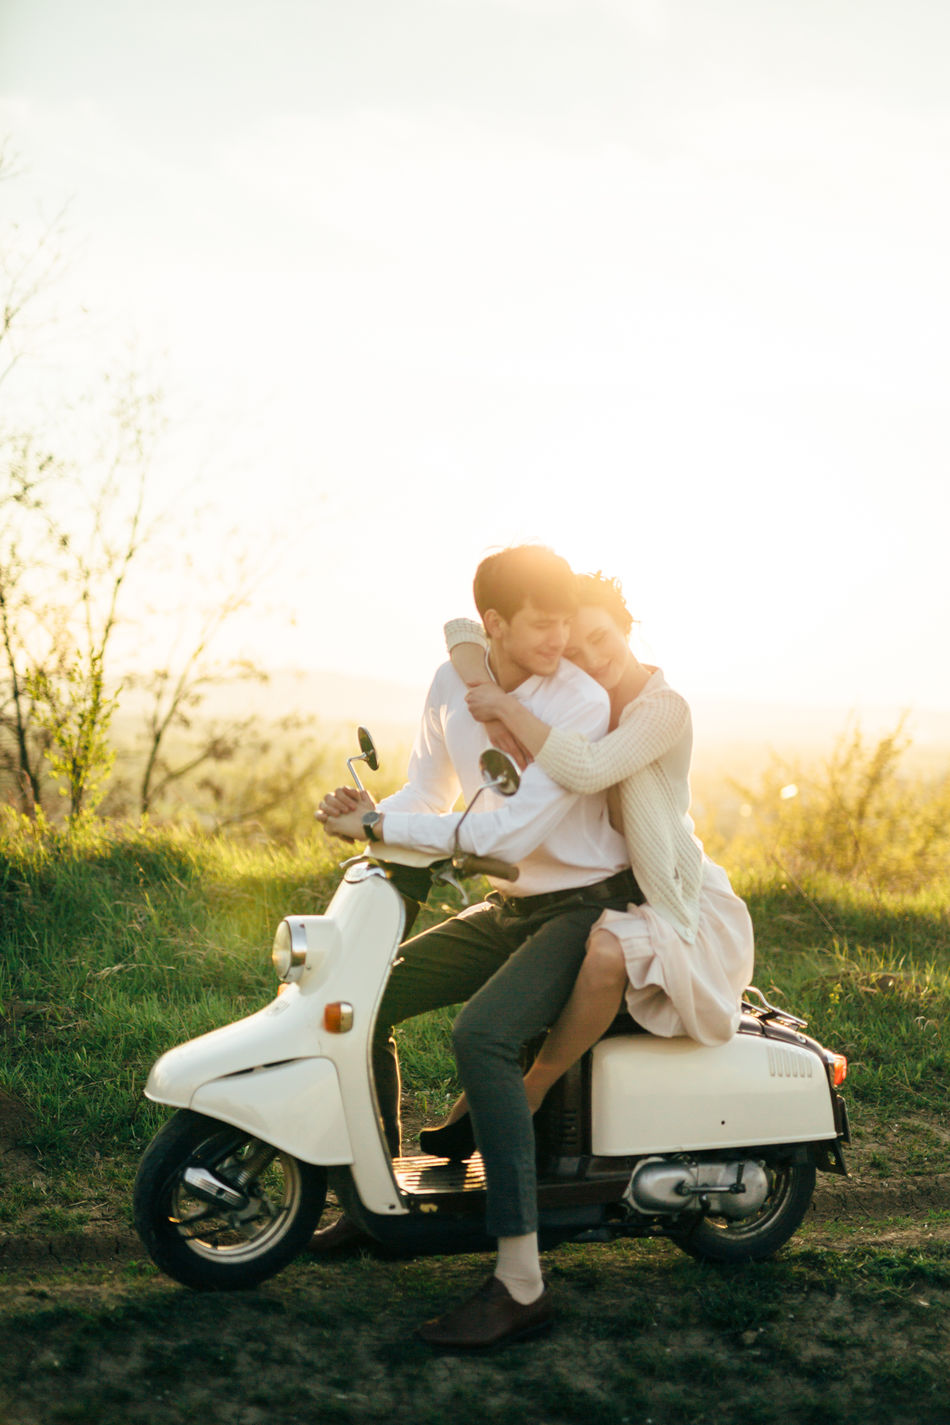 Couple - Relationship Togetherness Happiness Romance Beautiful People Bride Love Outdoors Beautiful Woman